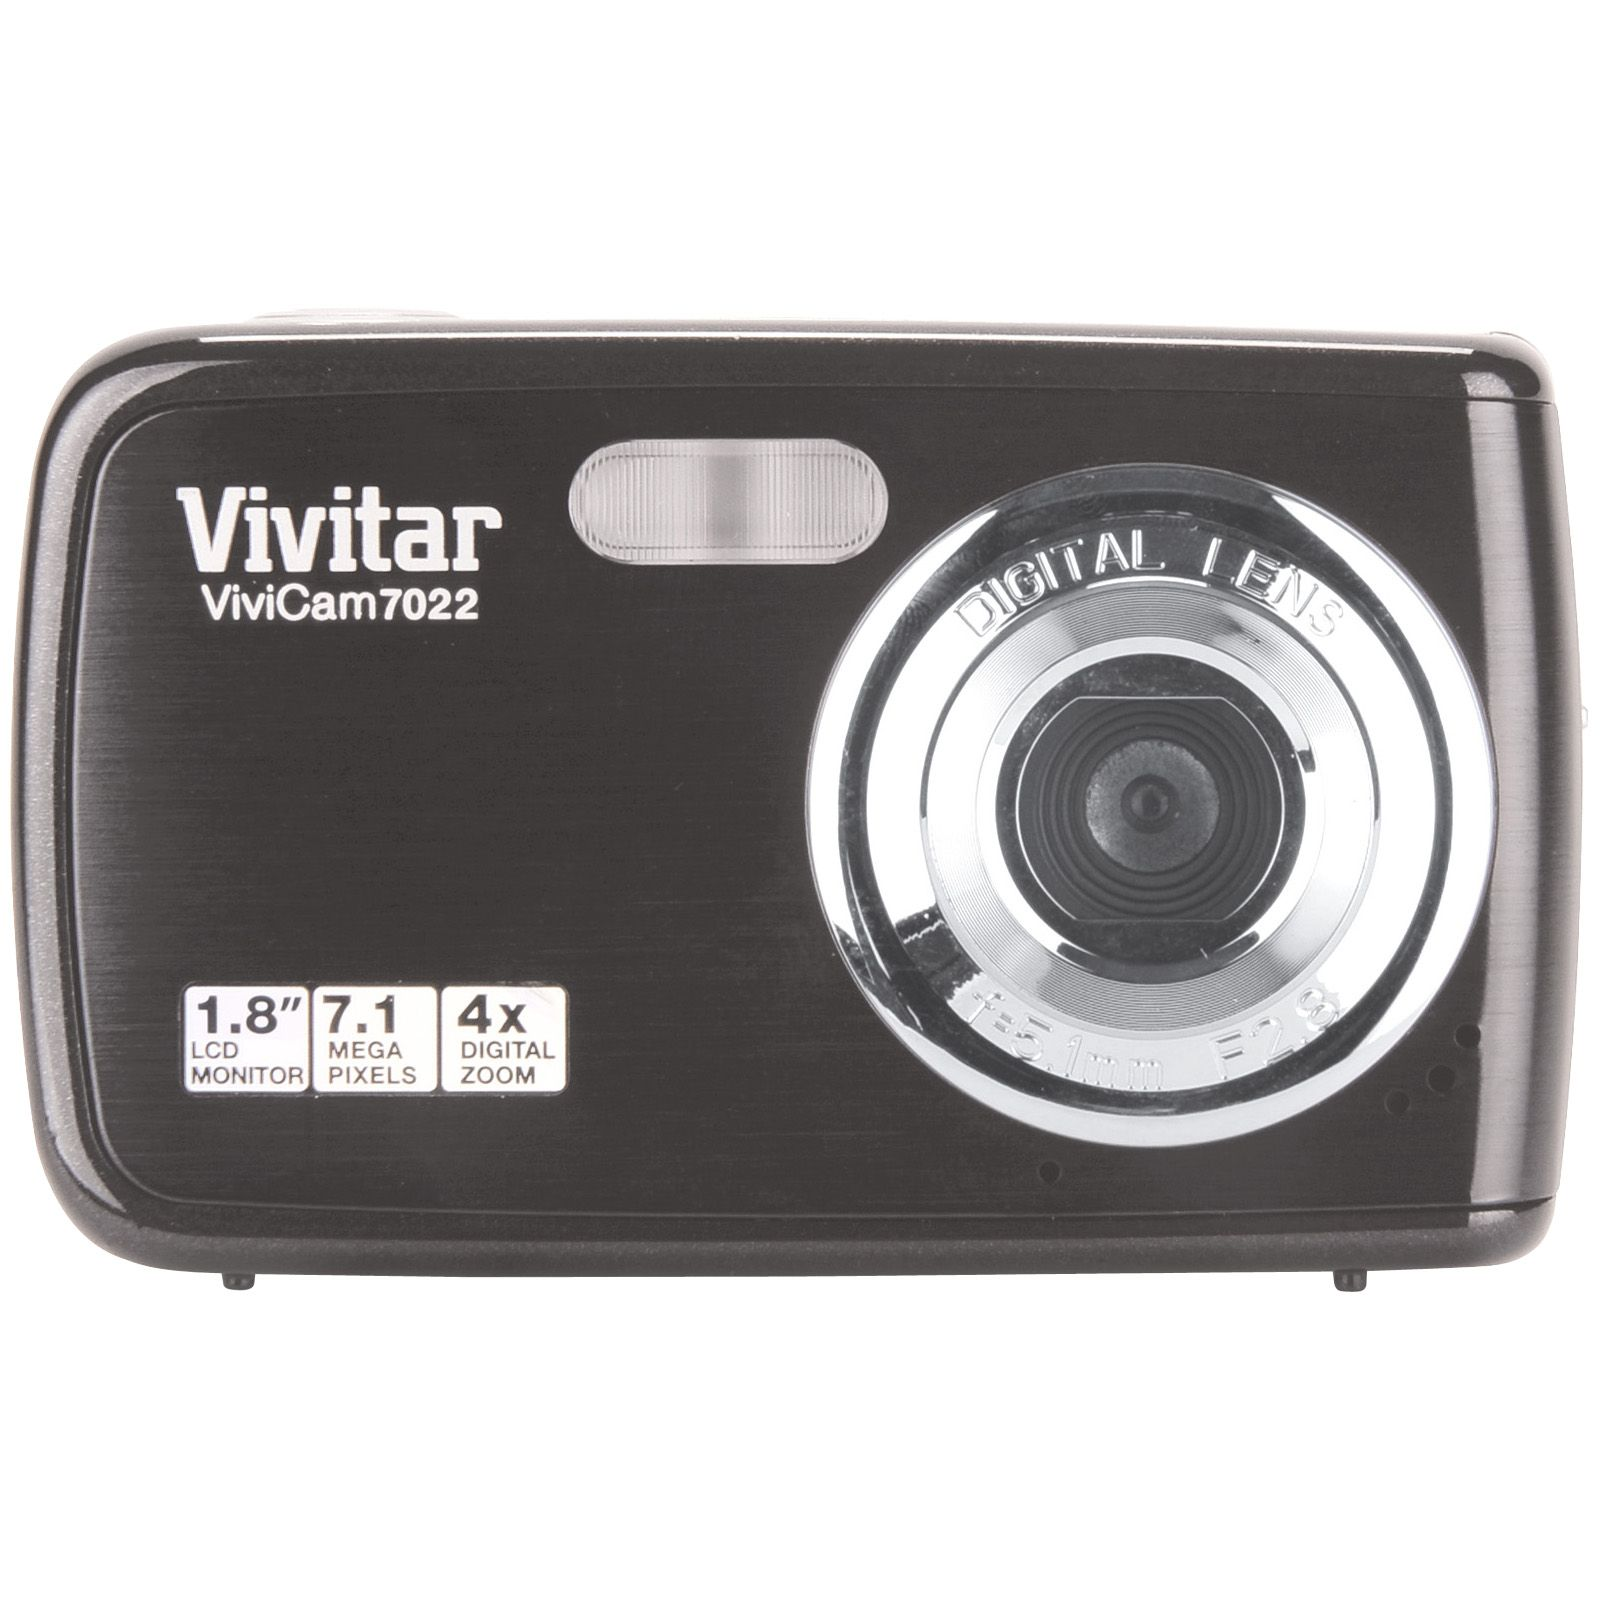 7.1 Megapixel Digital Camera- Graphite